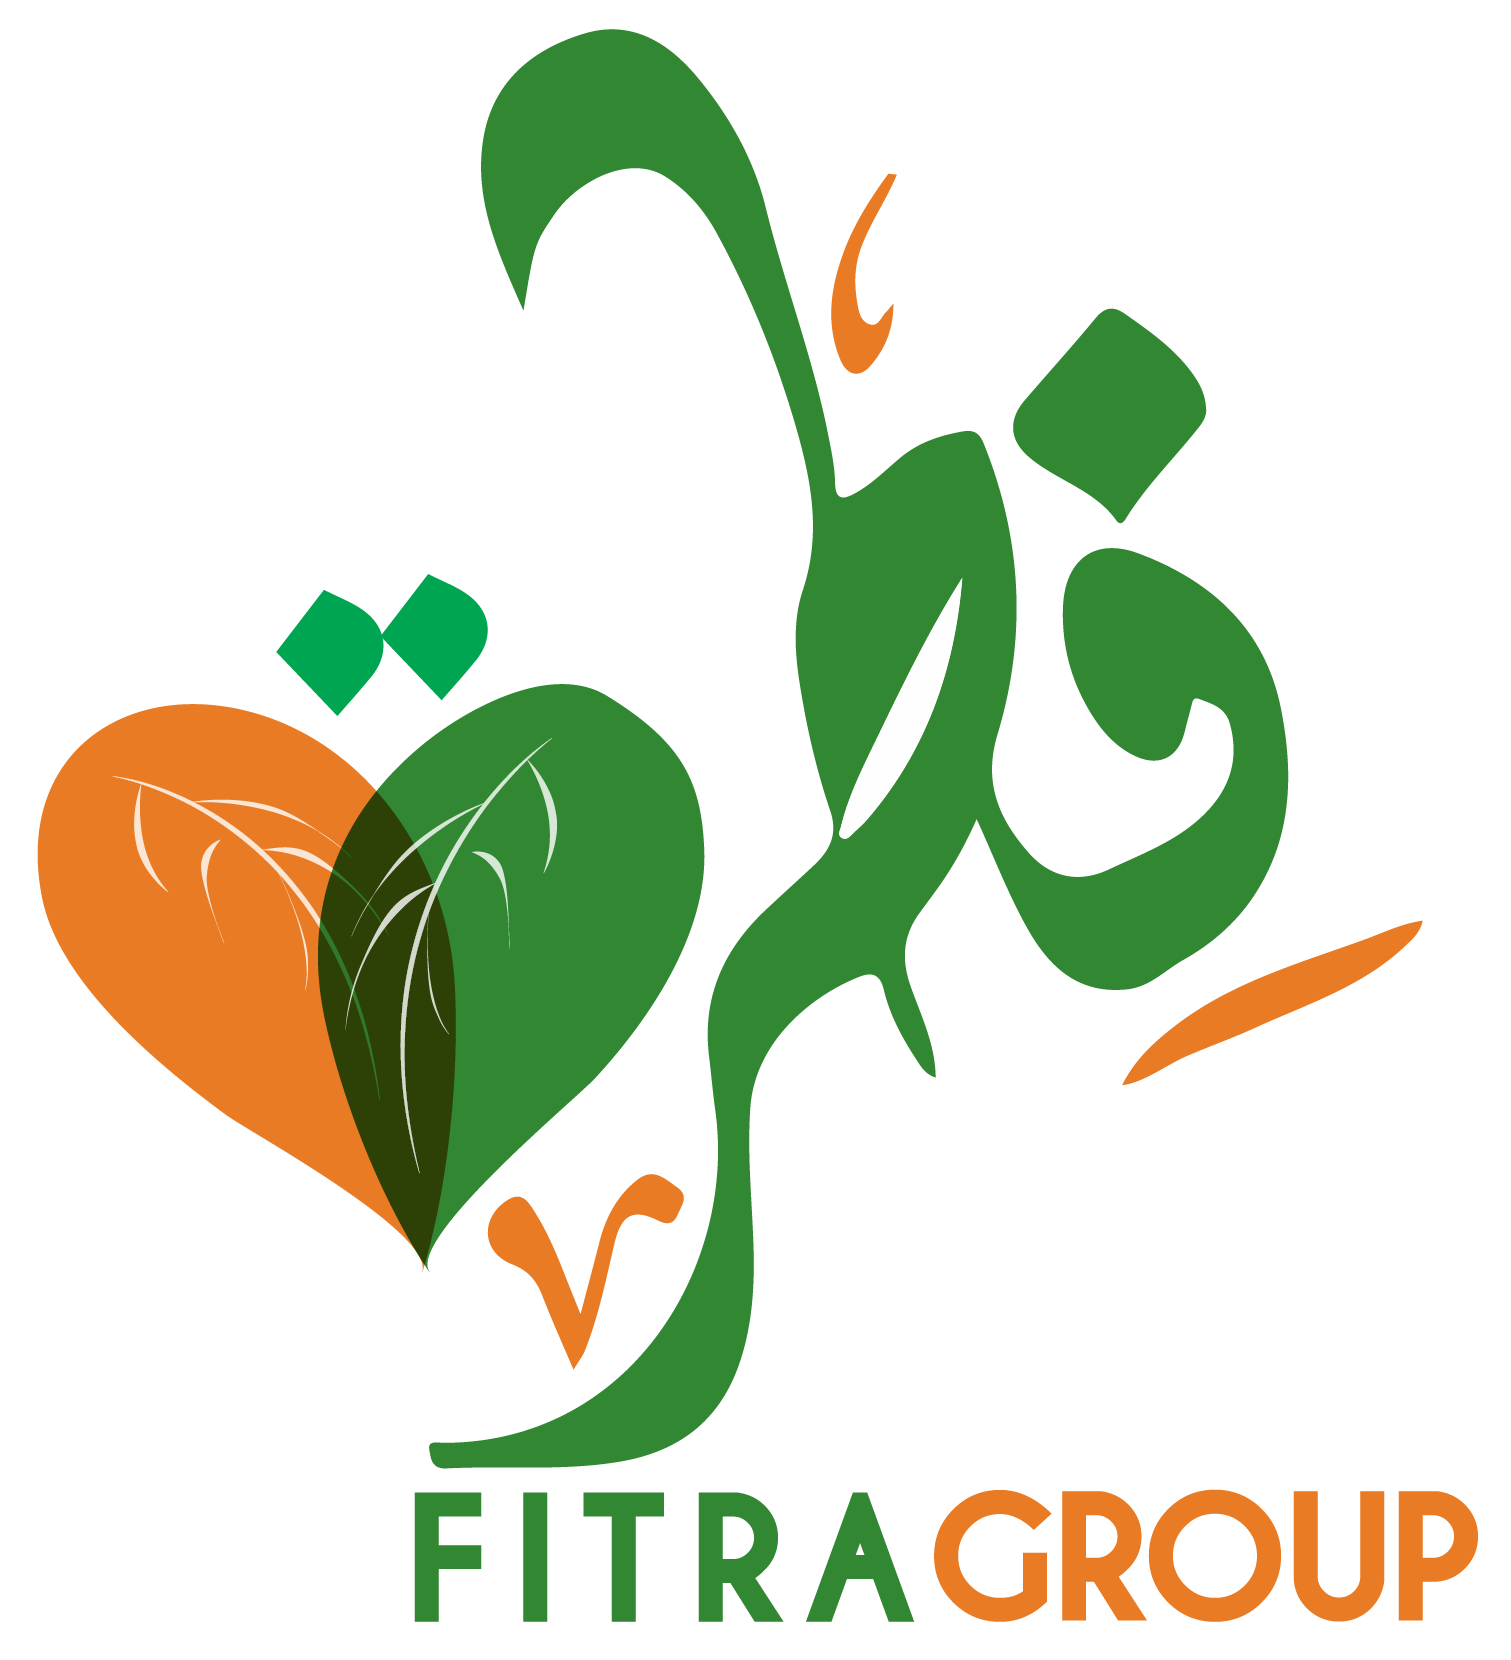 Fitra Group